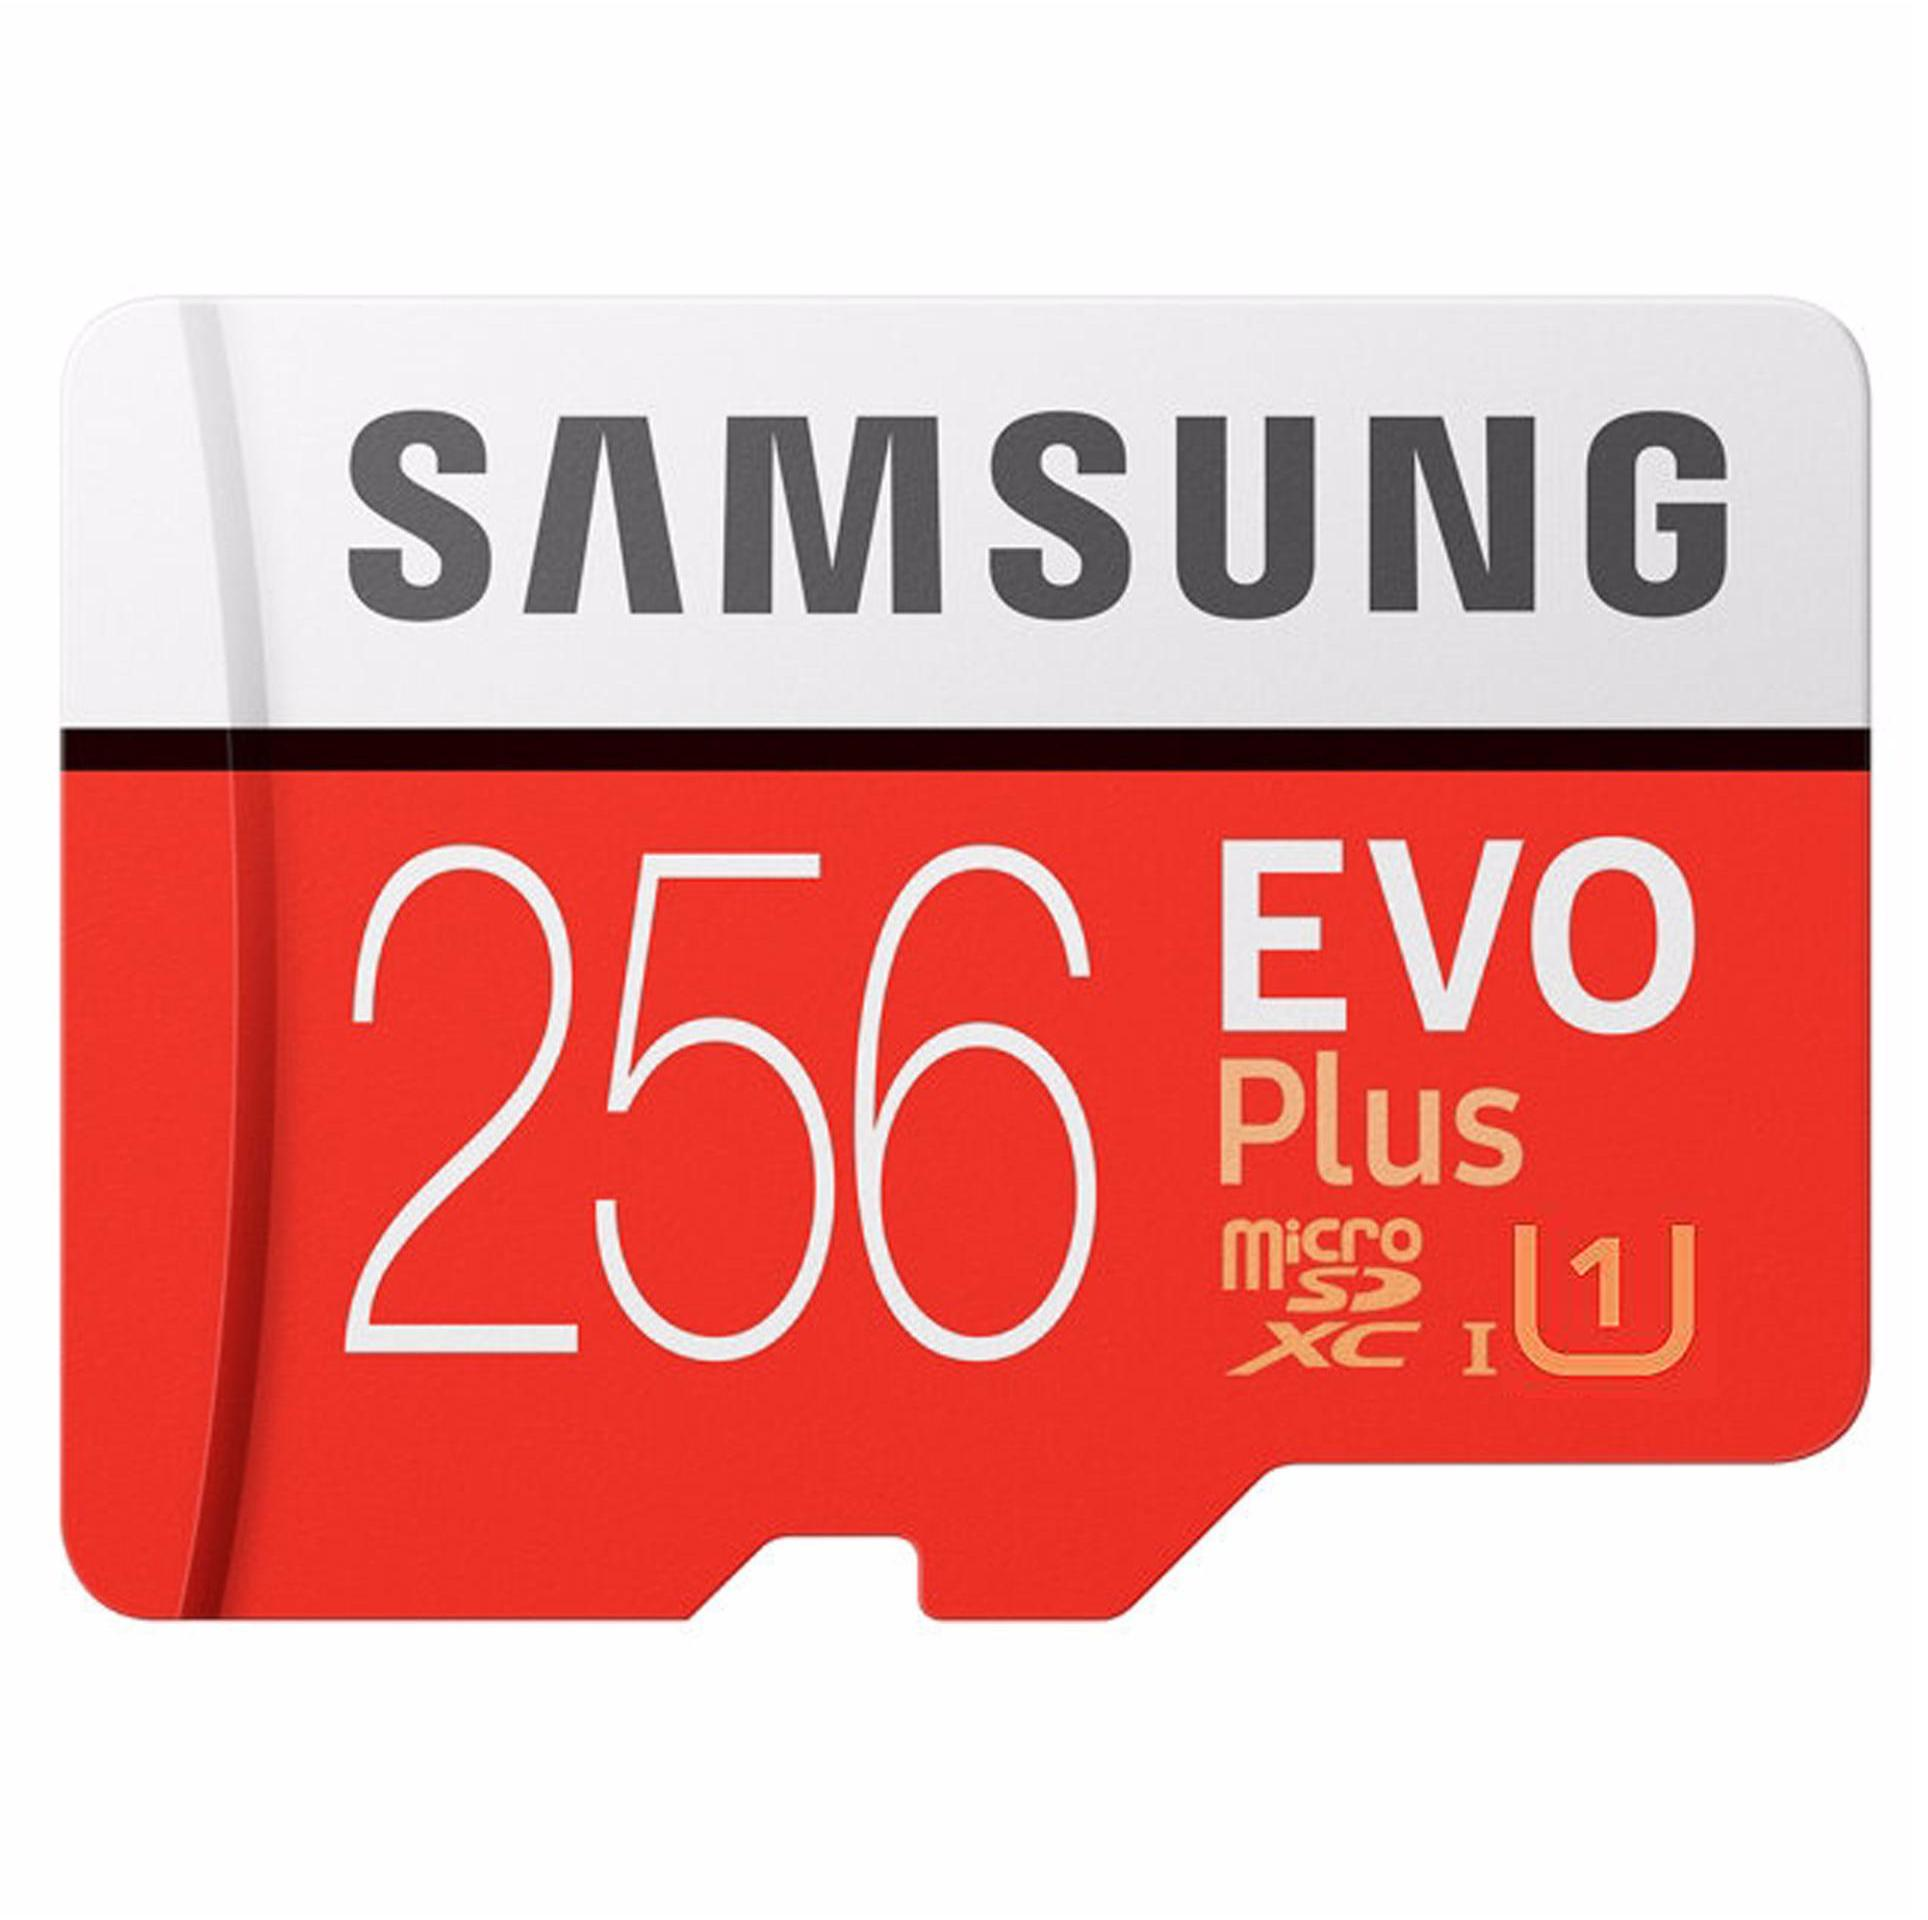 Samsung Memory Card Microsdxc Evo Plus 256gb / 100mb/s With Adapter - Merah By Relax Life Shop.